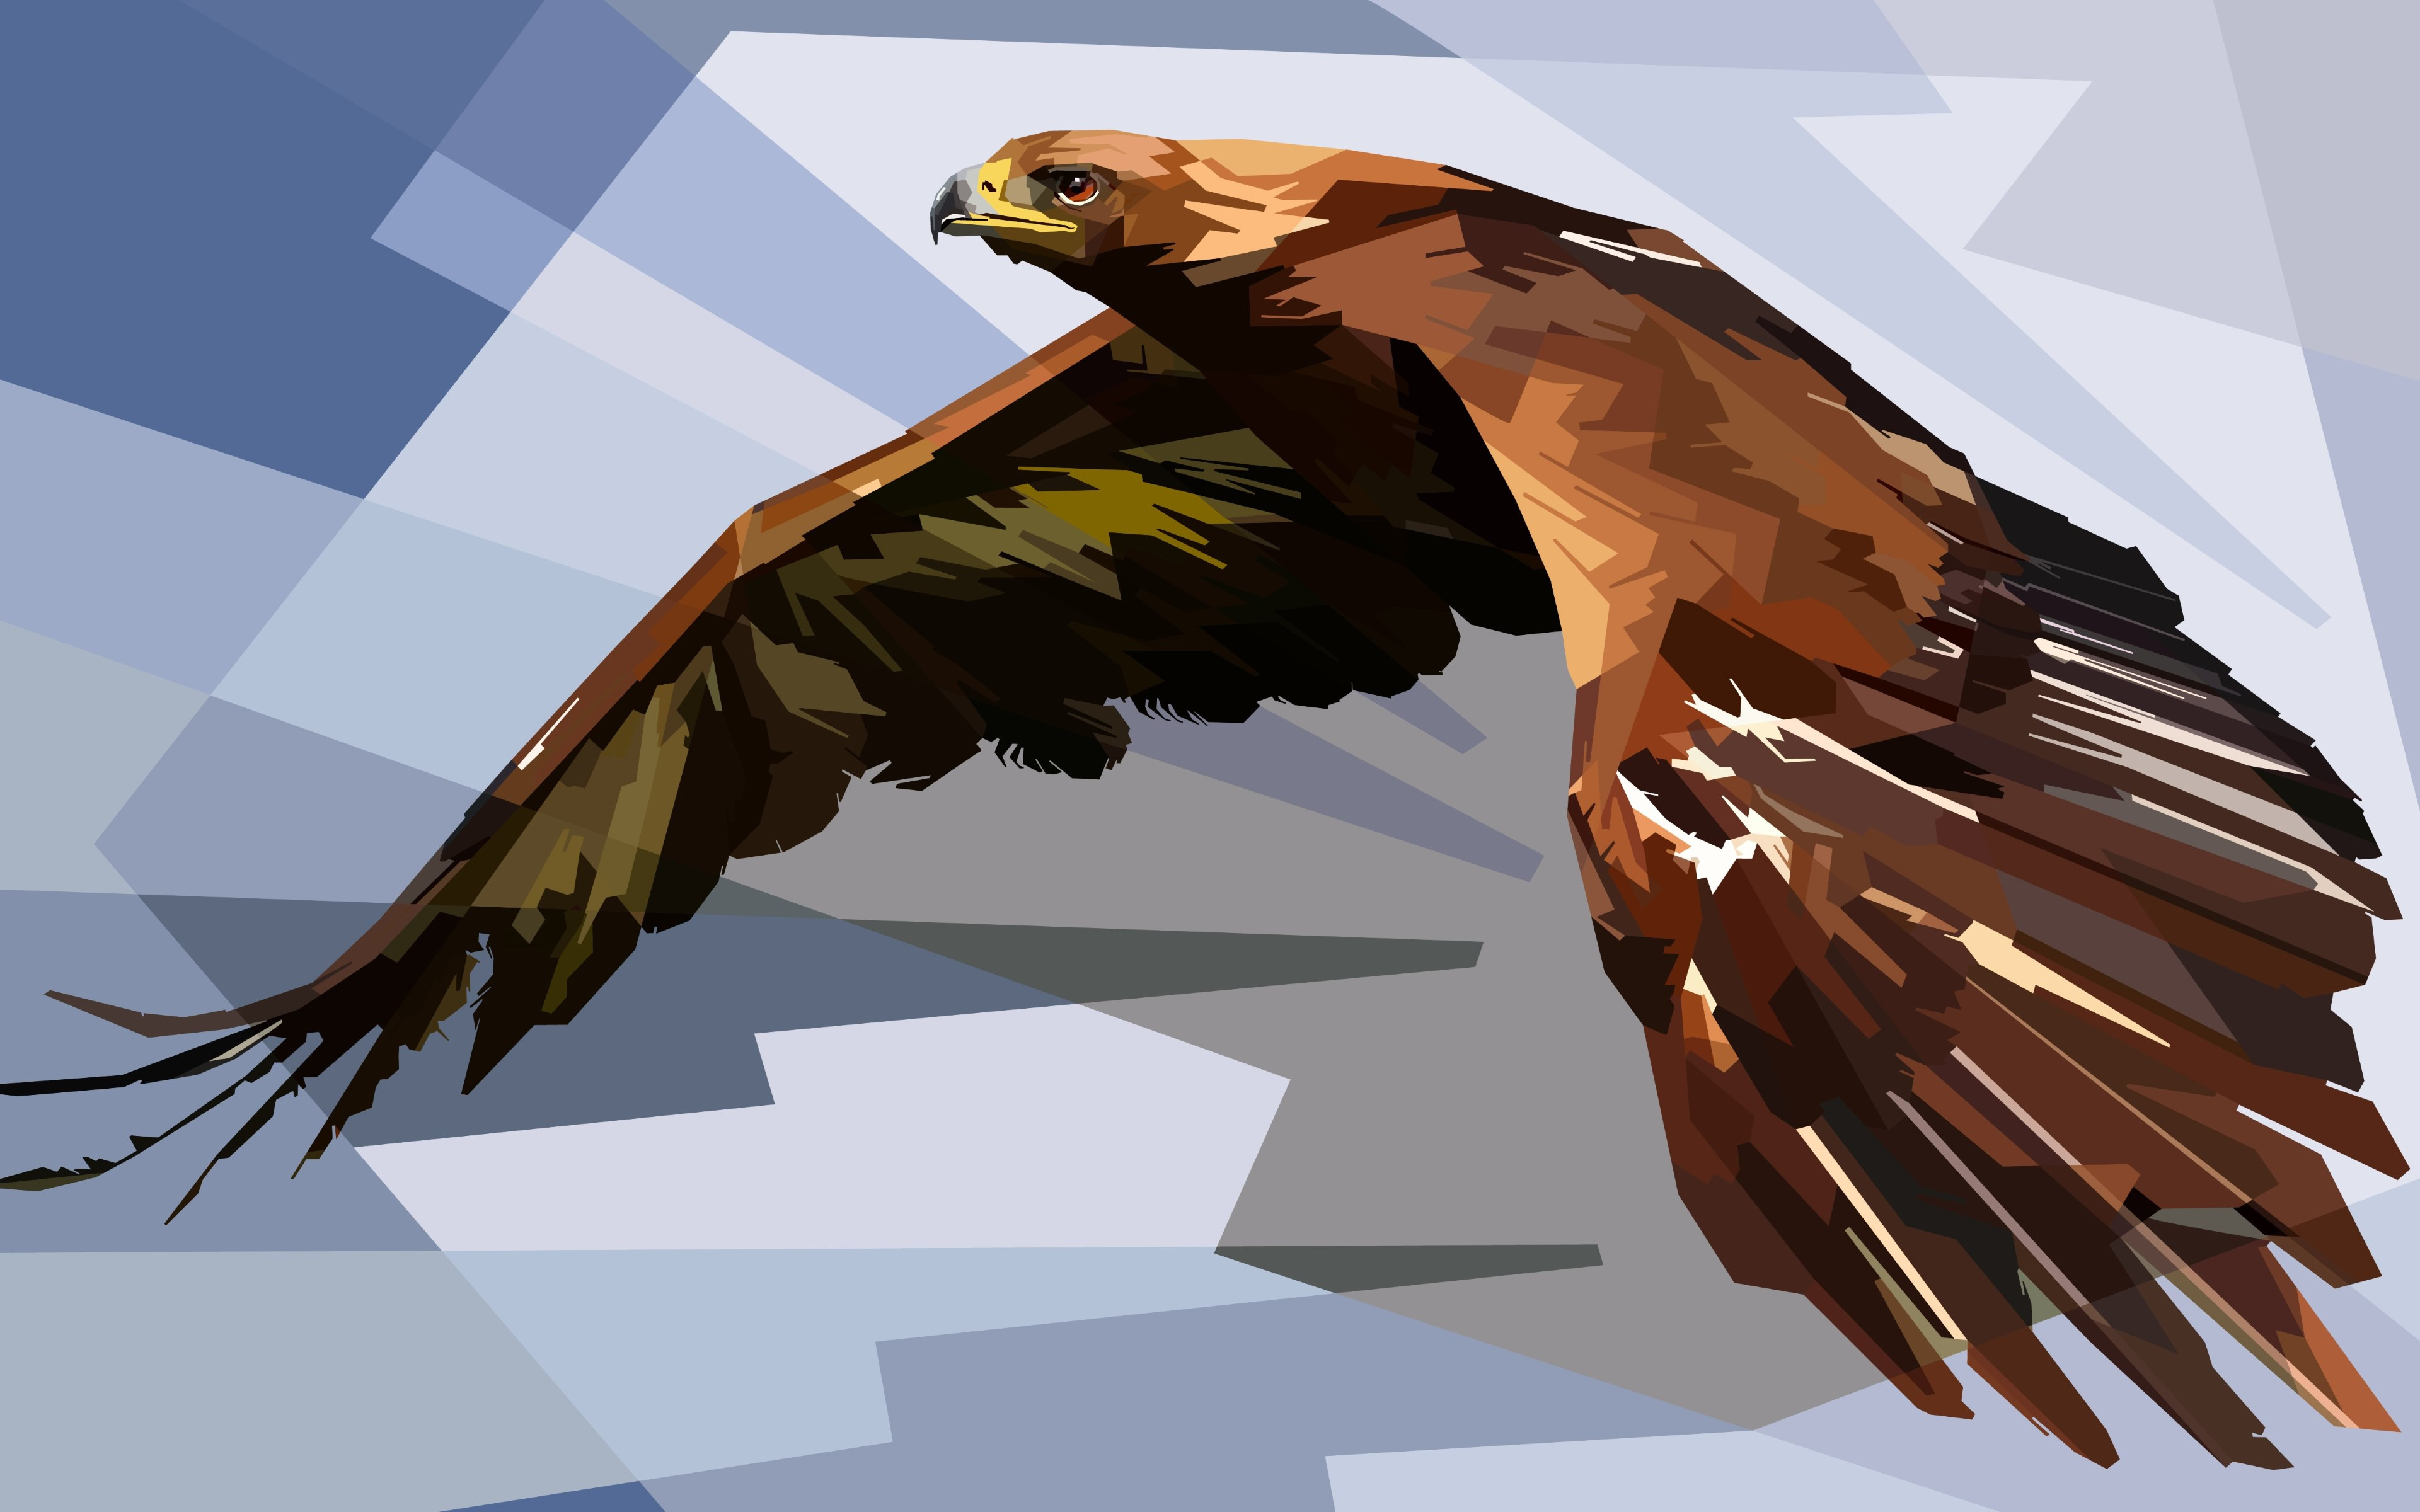 Digital drawing of an eagle | 3840x2400 wallpaper